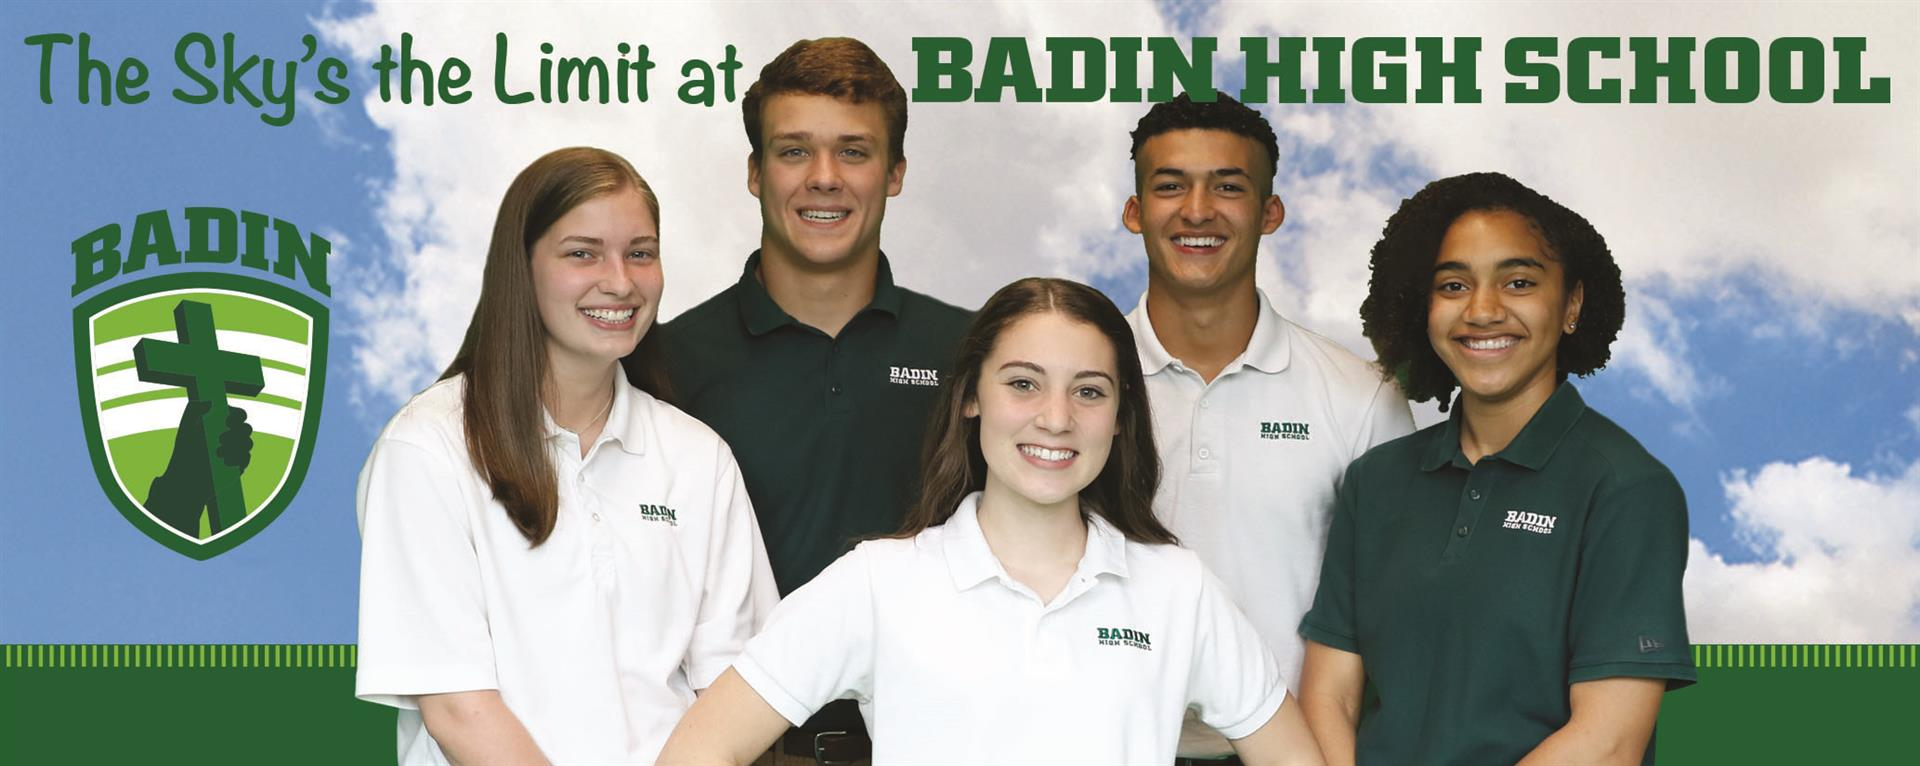 The Skys the Limit at Badin High School